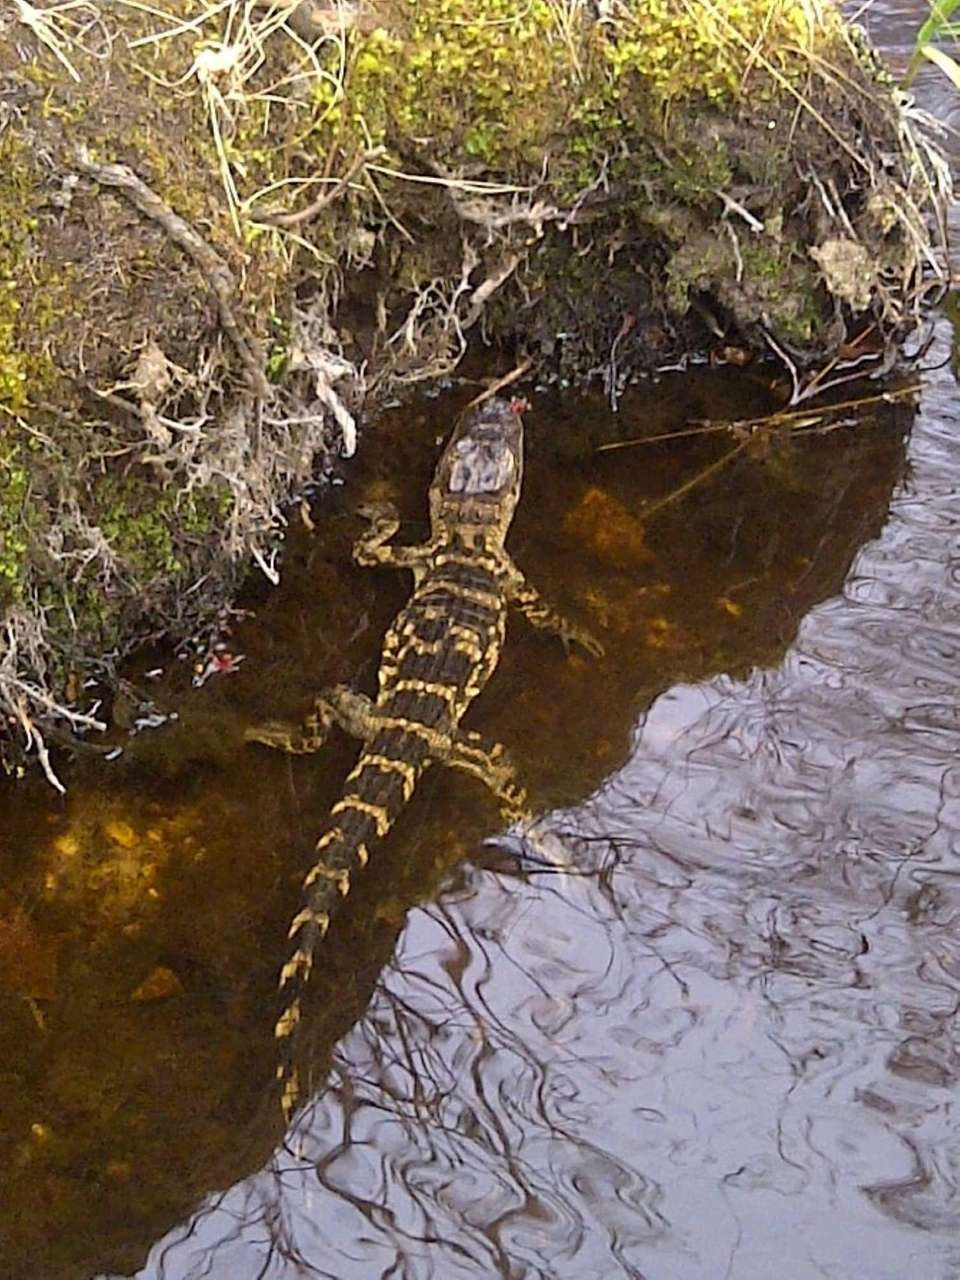 One of four young alligator captured near a